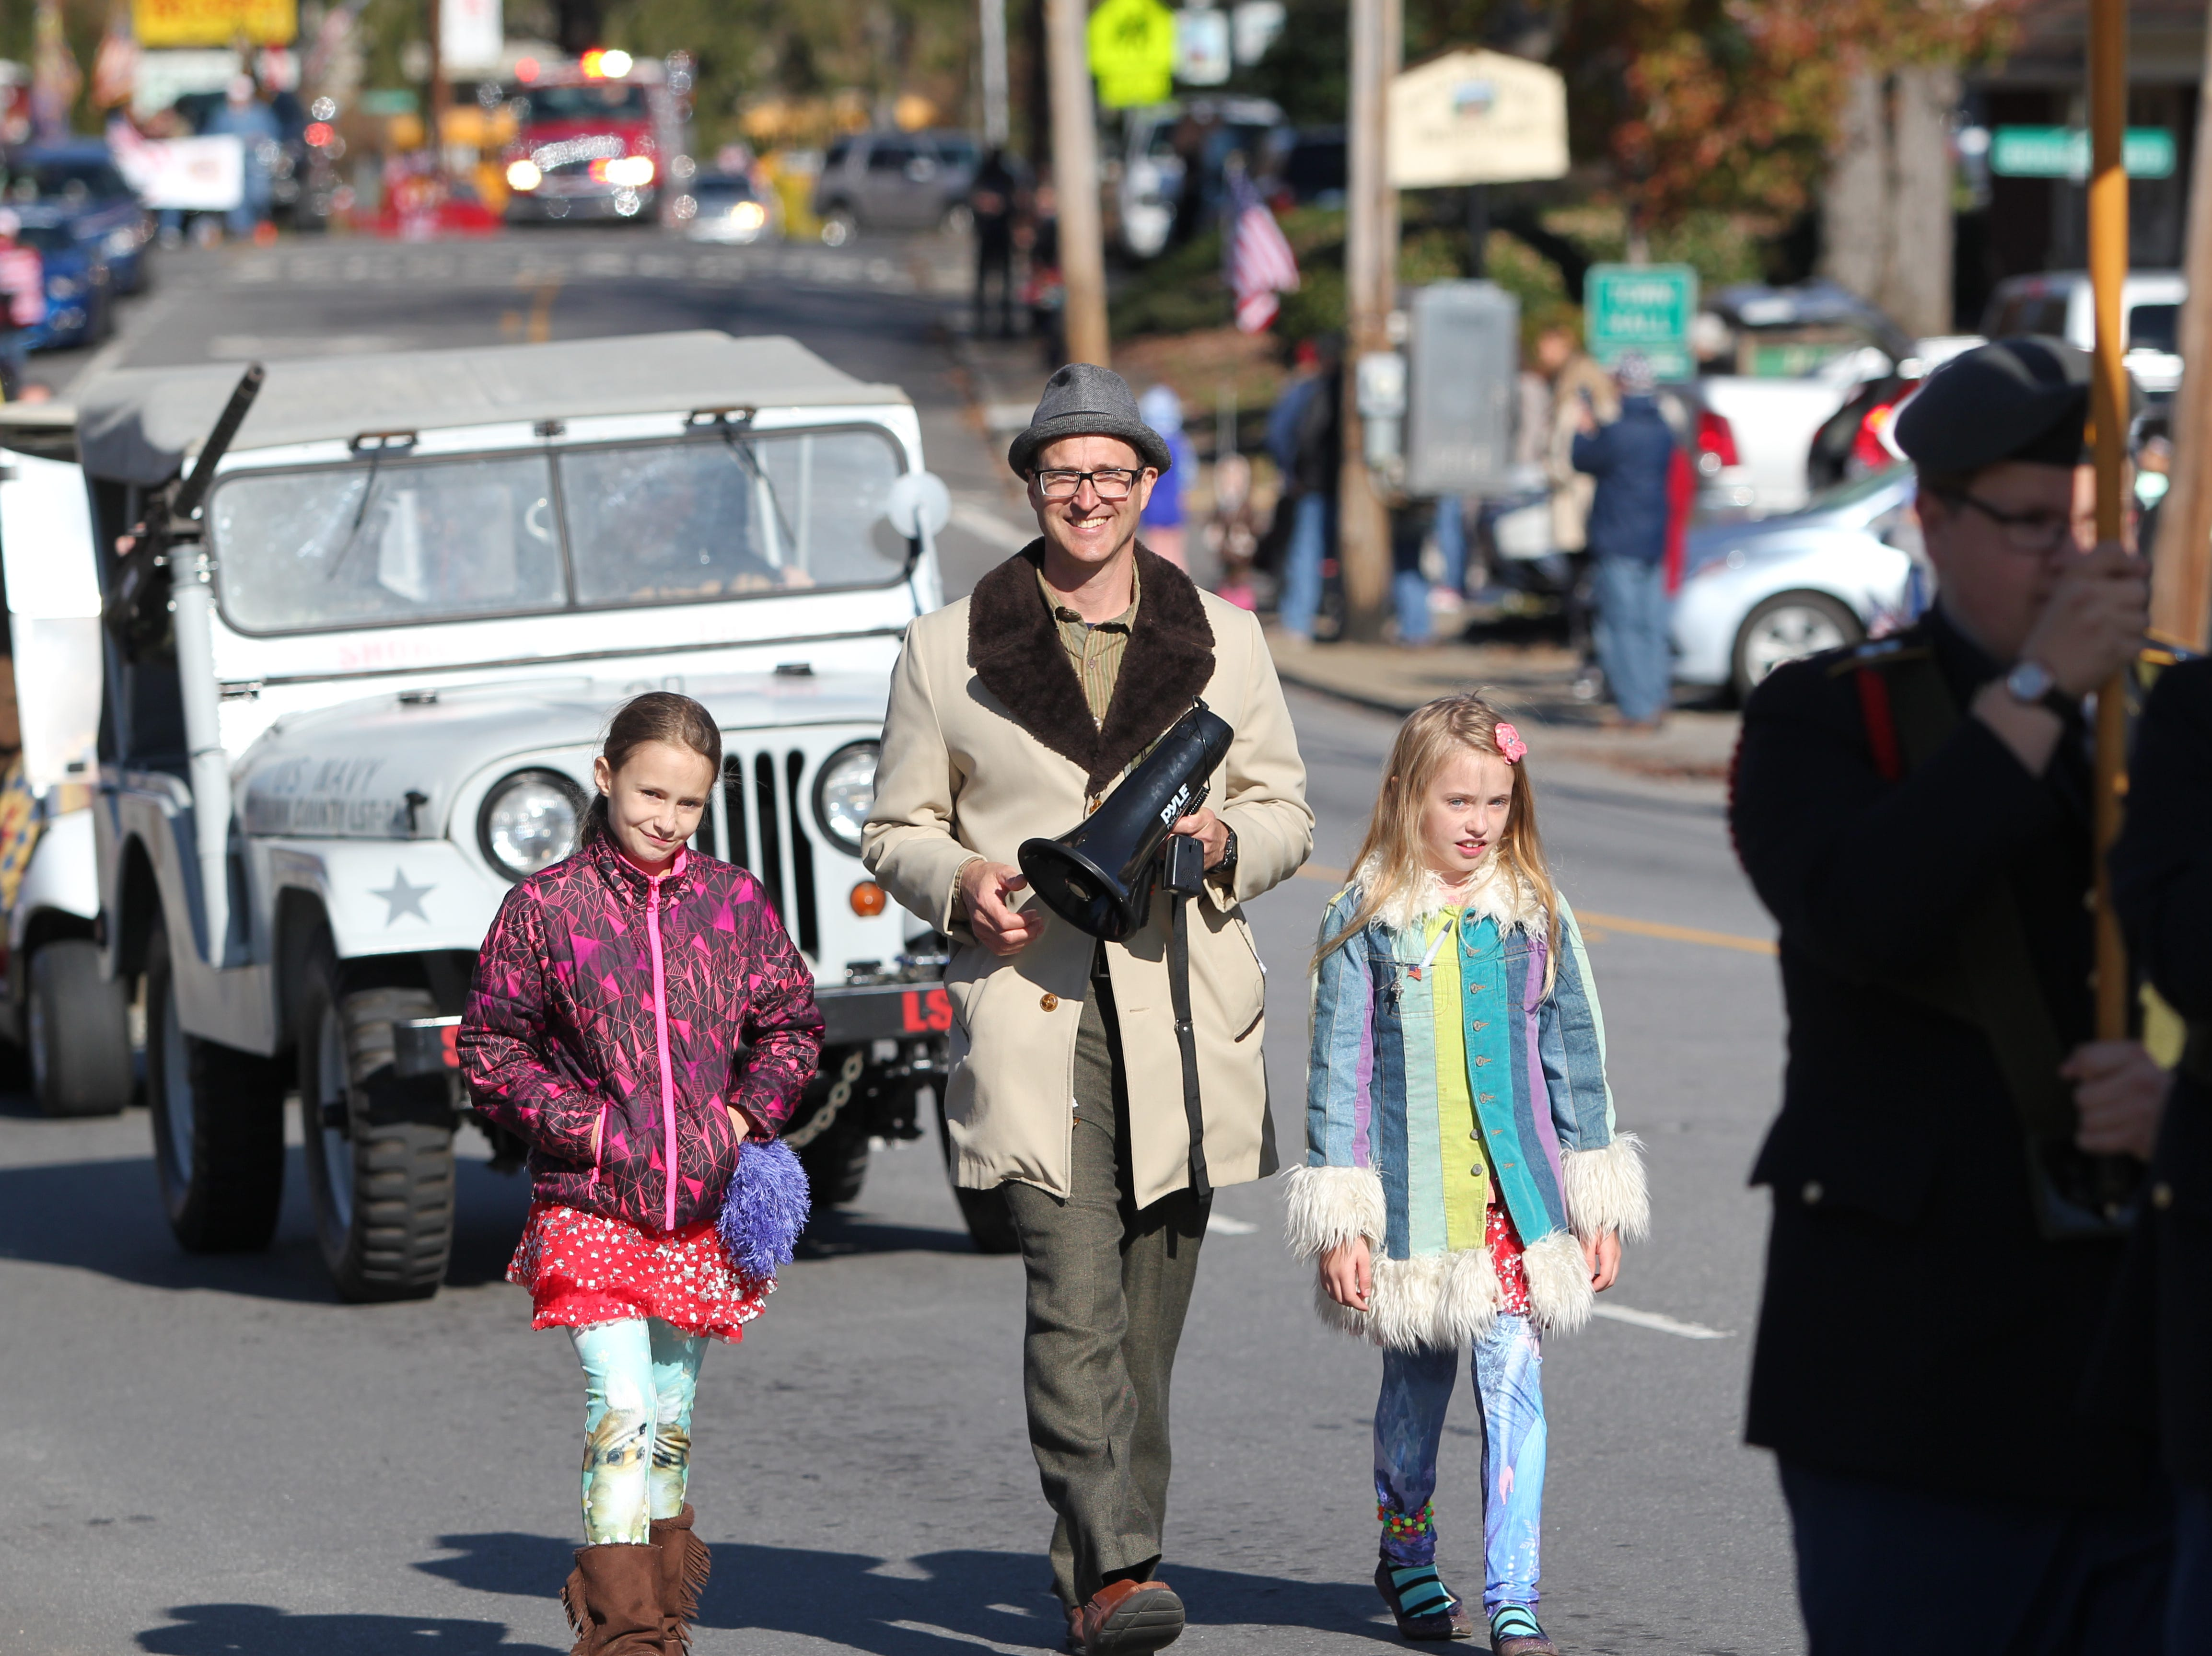 Weston Hall, a Black Mountain resident and veteran, walks in the Veterans Day Parade that made its way through the center of town at 2 p.m. on Sunday, Nov. 11, 2018. Hall is one of the organizers of the event.